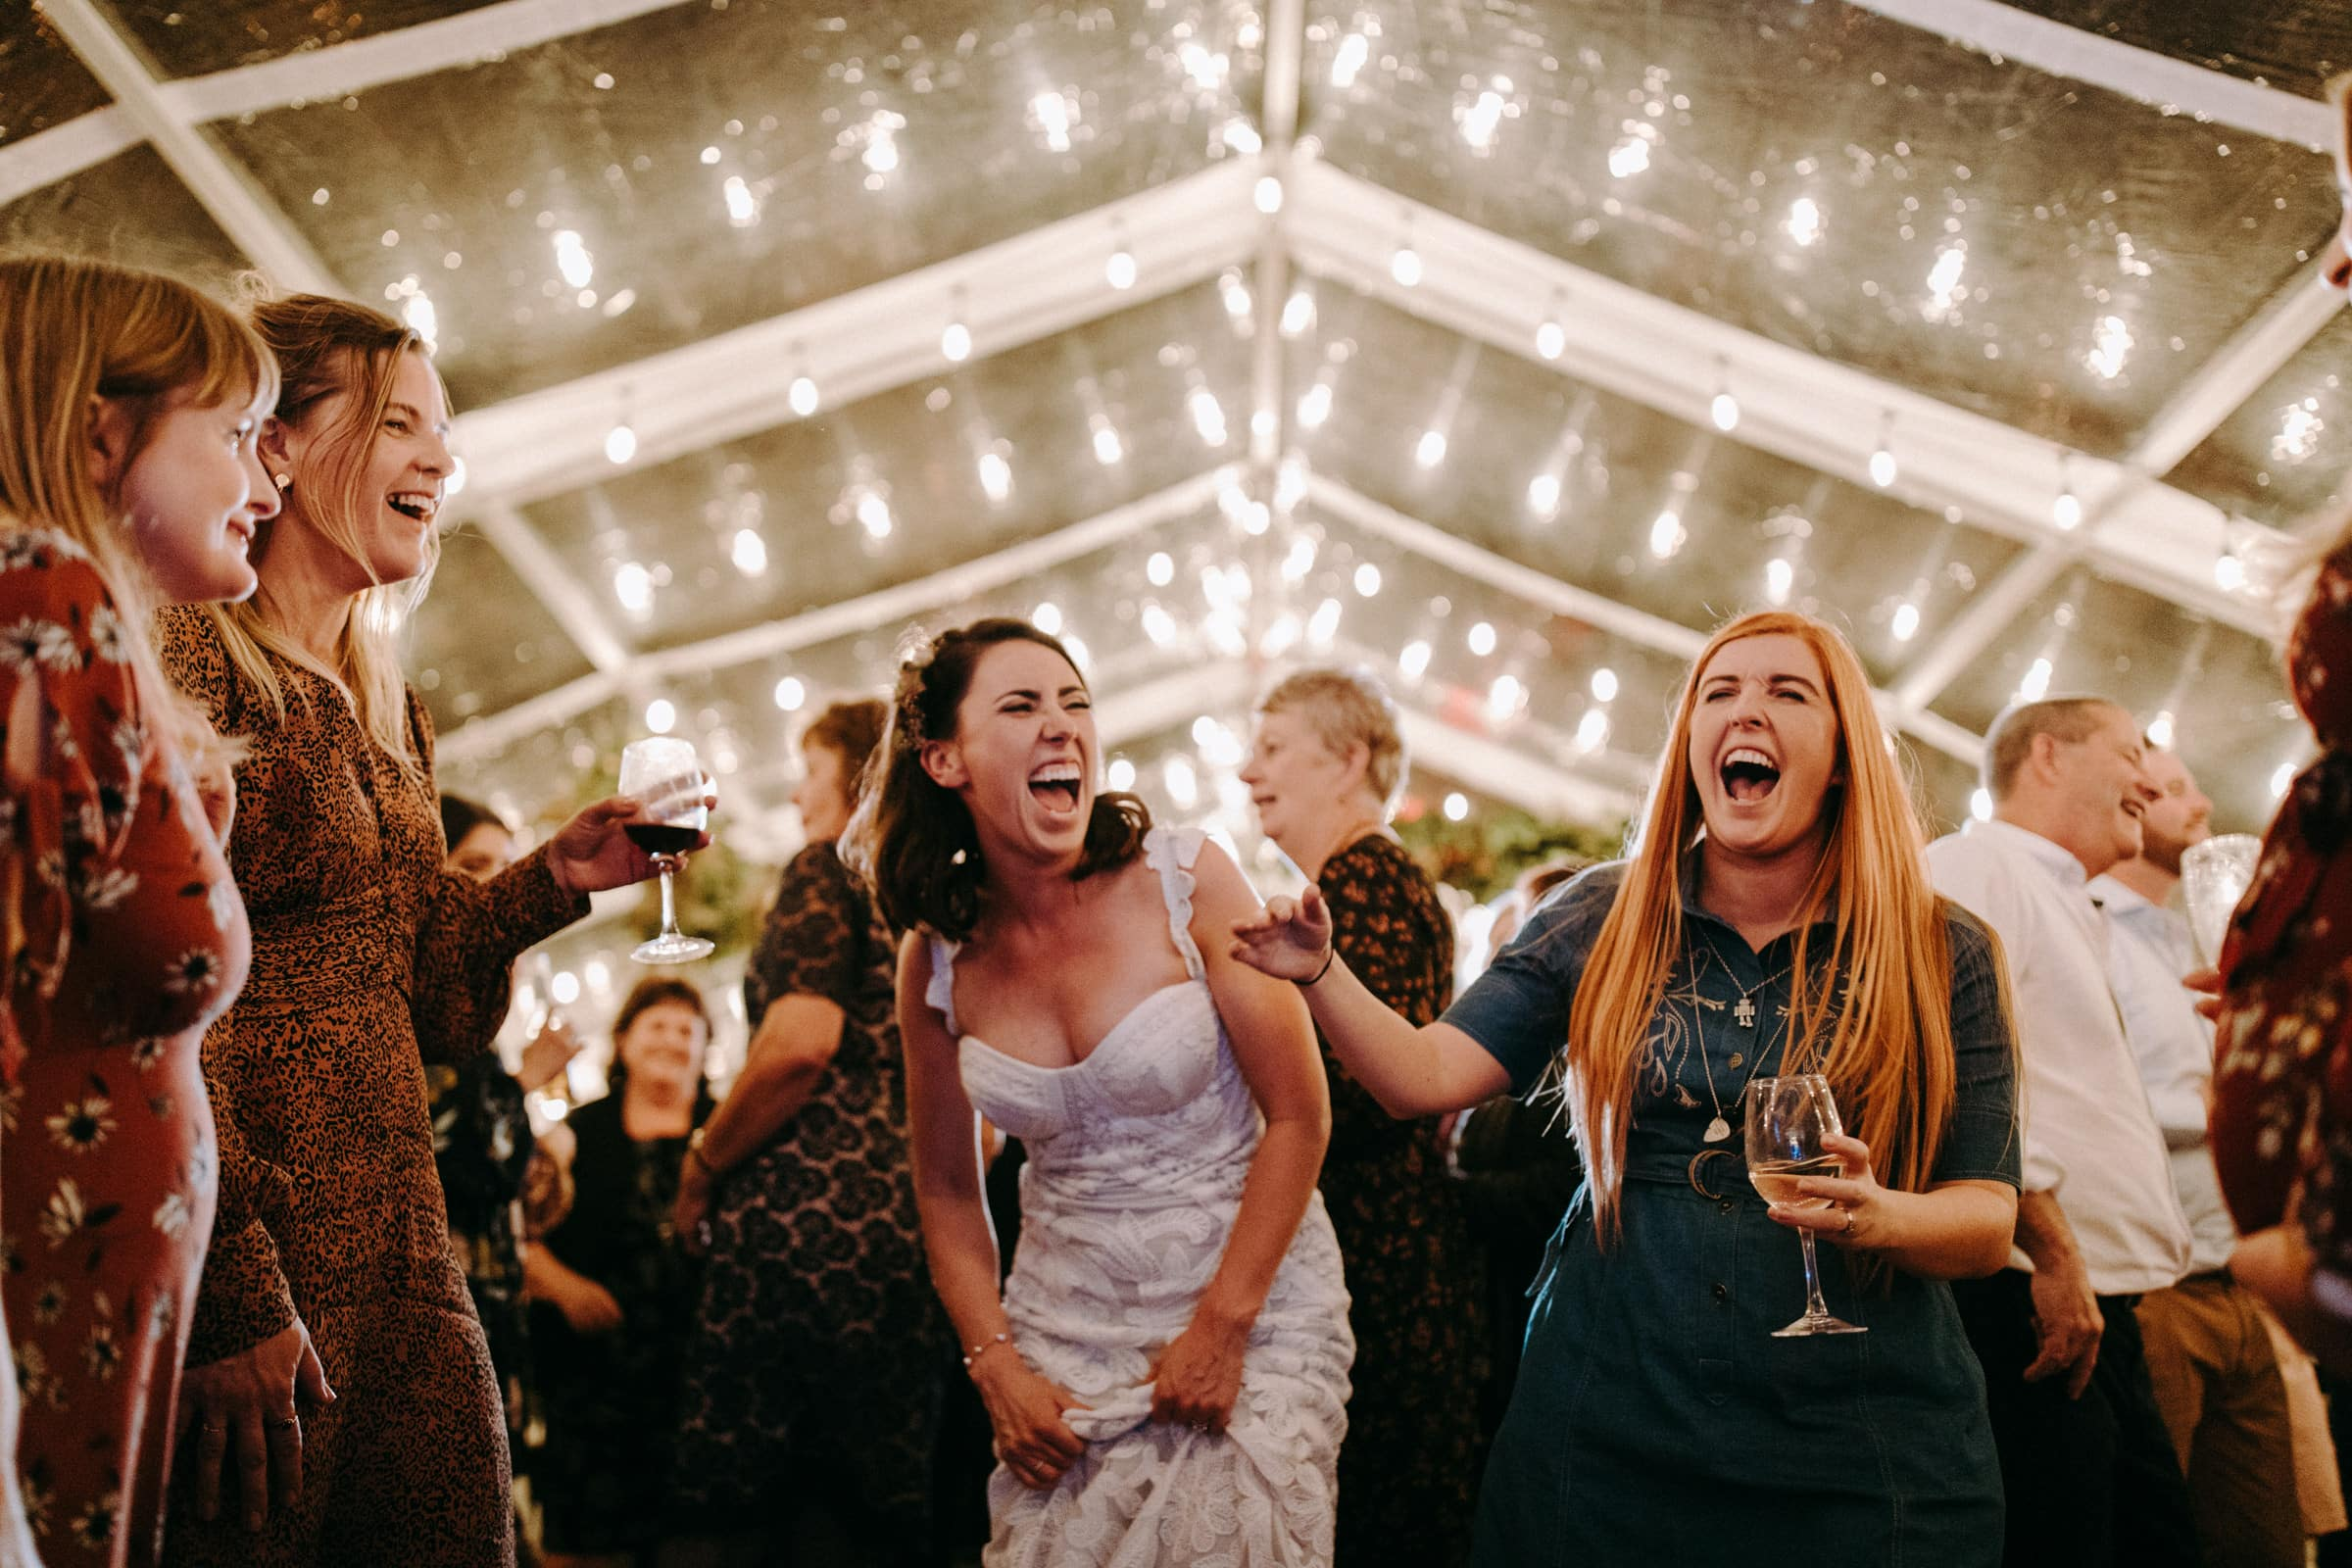 A bride and her wedding guests are laughing and dancing in a tent.